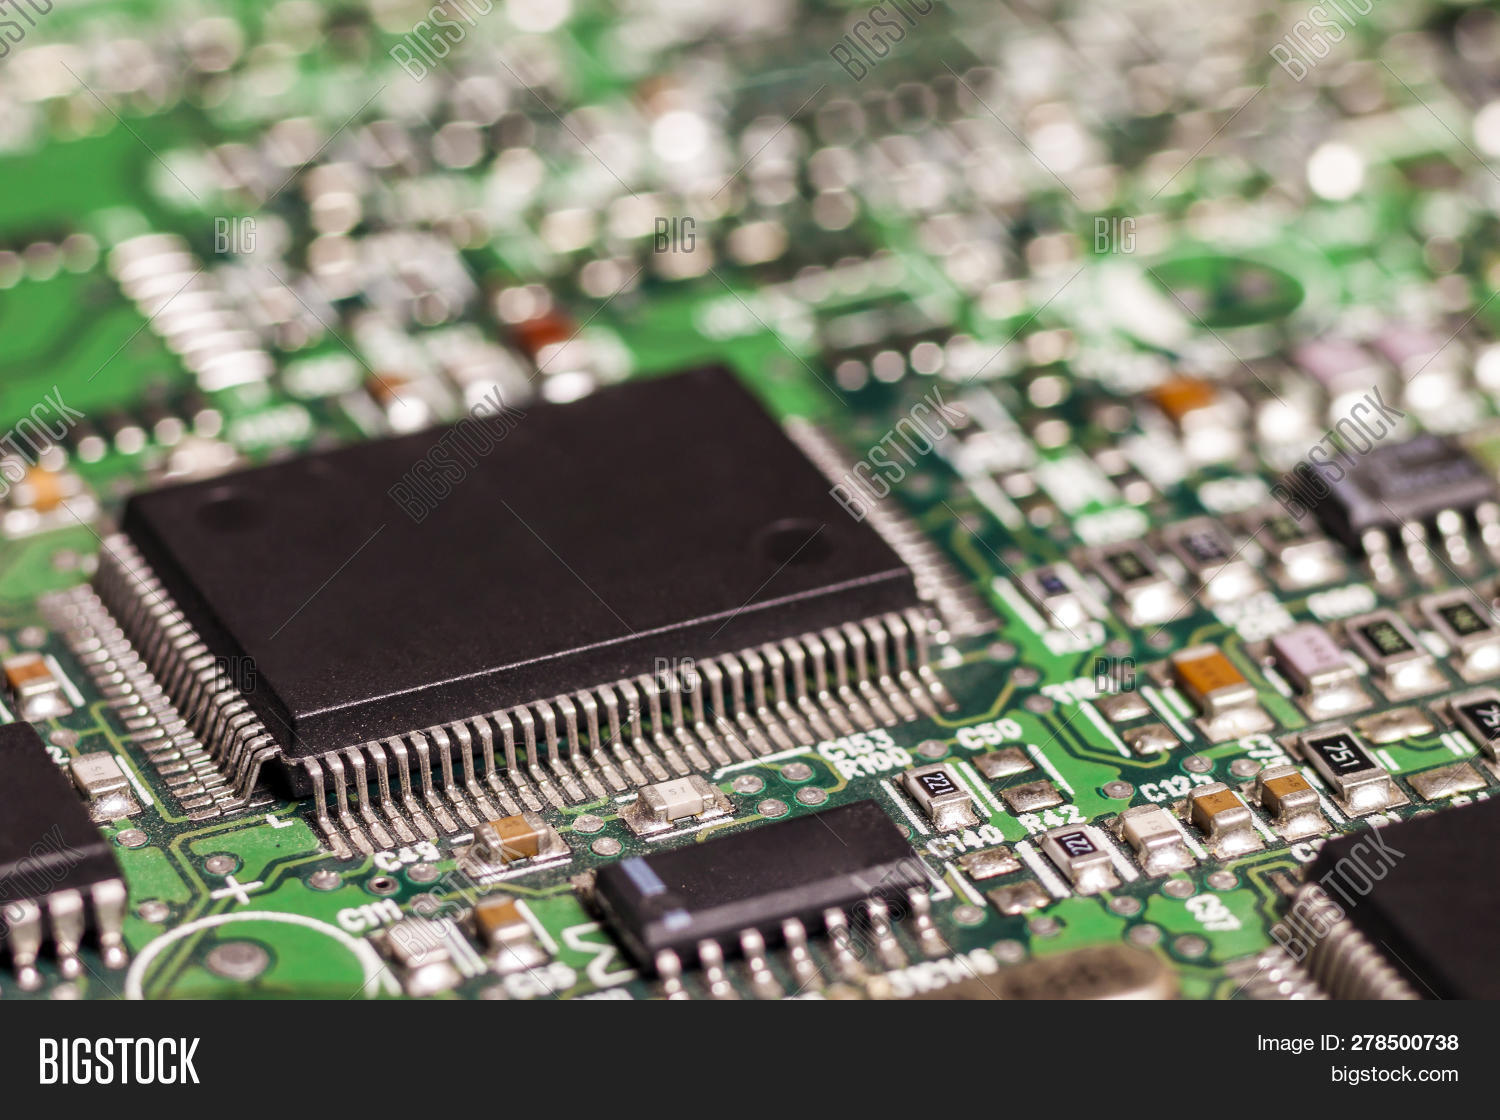 abstract,background,blue,board,card,chip,circuit,circuitry,closeup,communication,component,computer,concept,connection,data,design,detail,device,digital,electric,electrical,electricity,electronic,engineering,equipment,green,hardware,high,industry,information,integrated,macro,microchip,microprocessor,modern,motherboard,network,part,pattern,pc,pcb,printed,processor,science,semiconductor,system,tech,technology,transistor